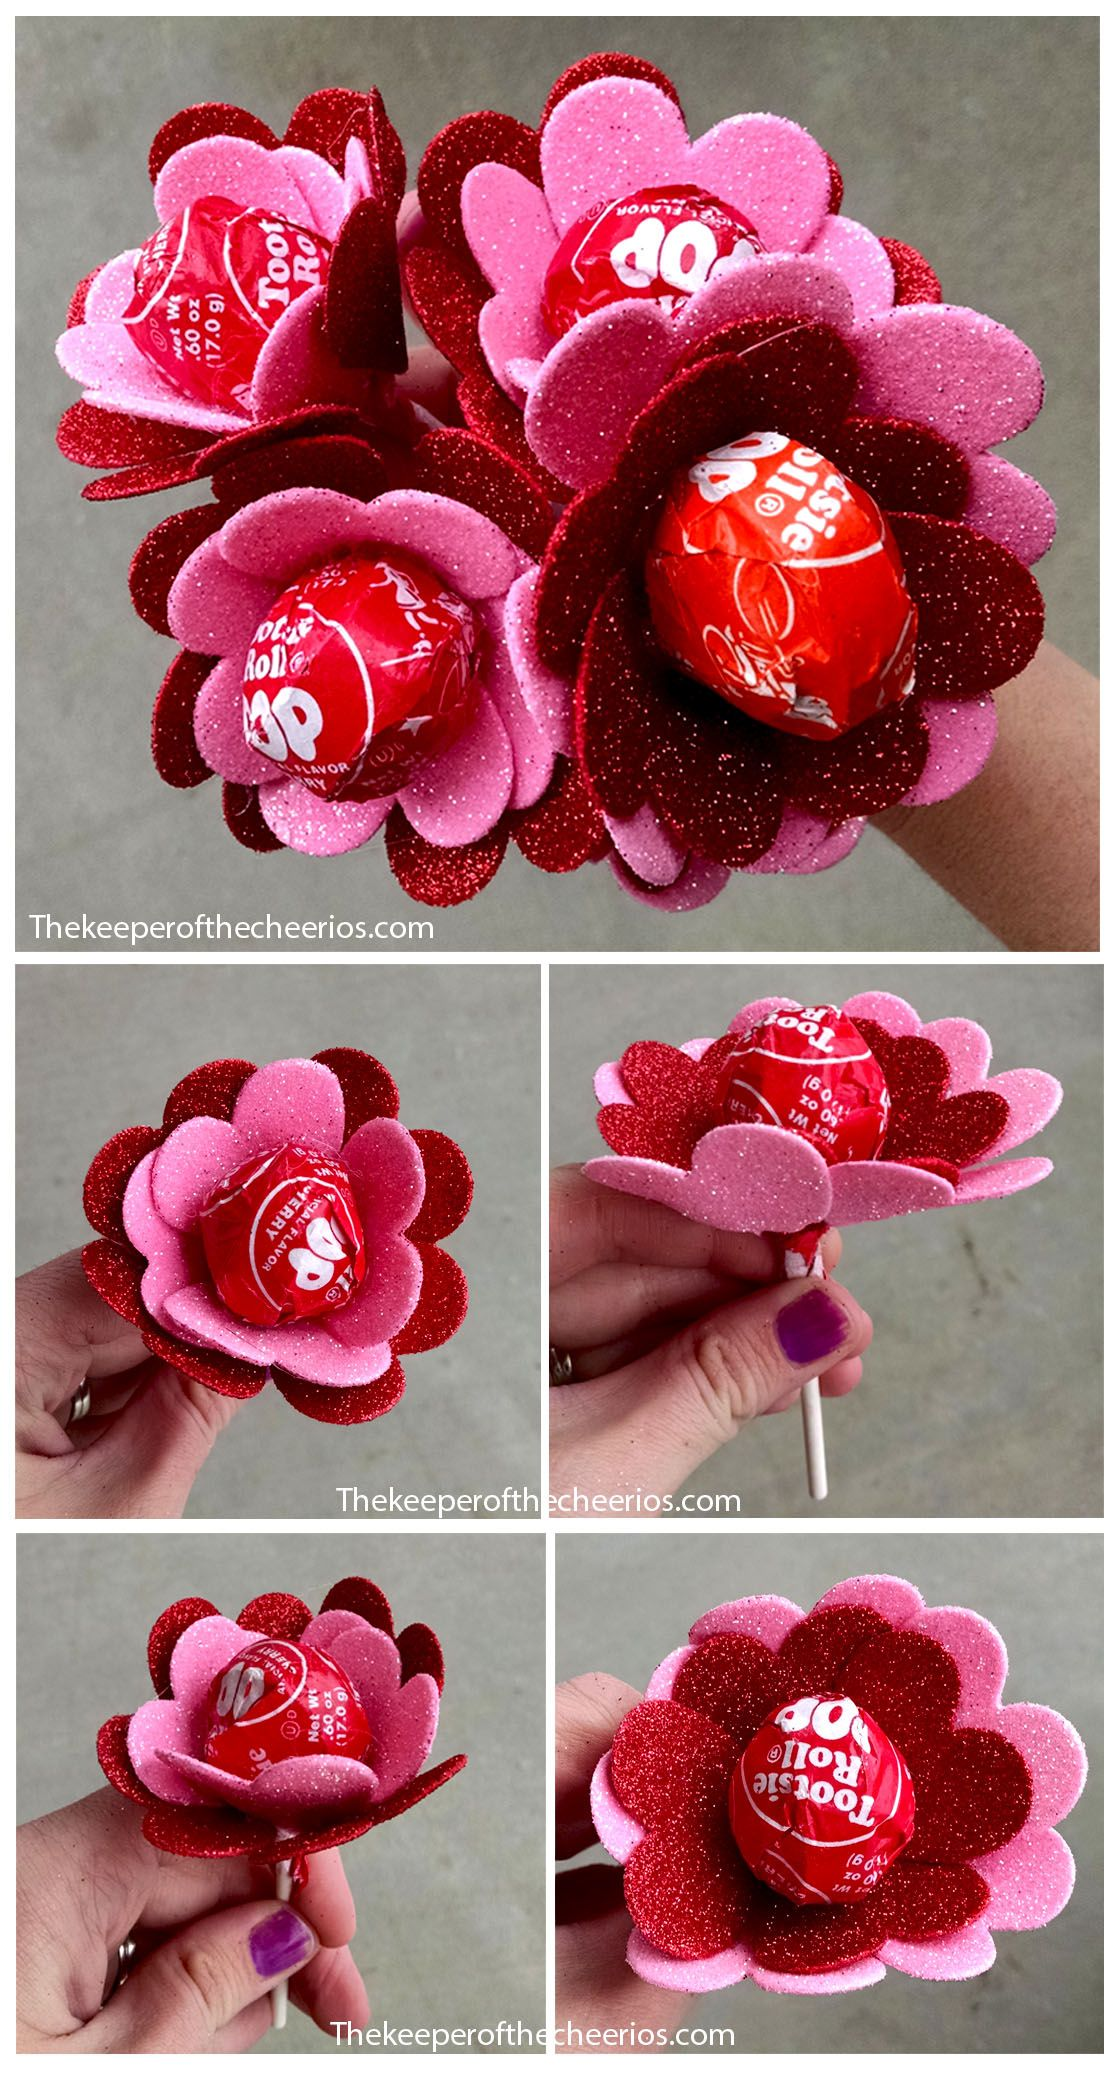 Diy Pinterest Flower Heart Valentine Suckers Valentines Day Pinterest